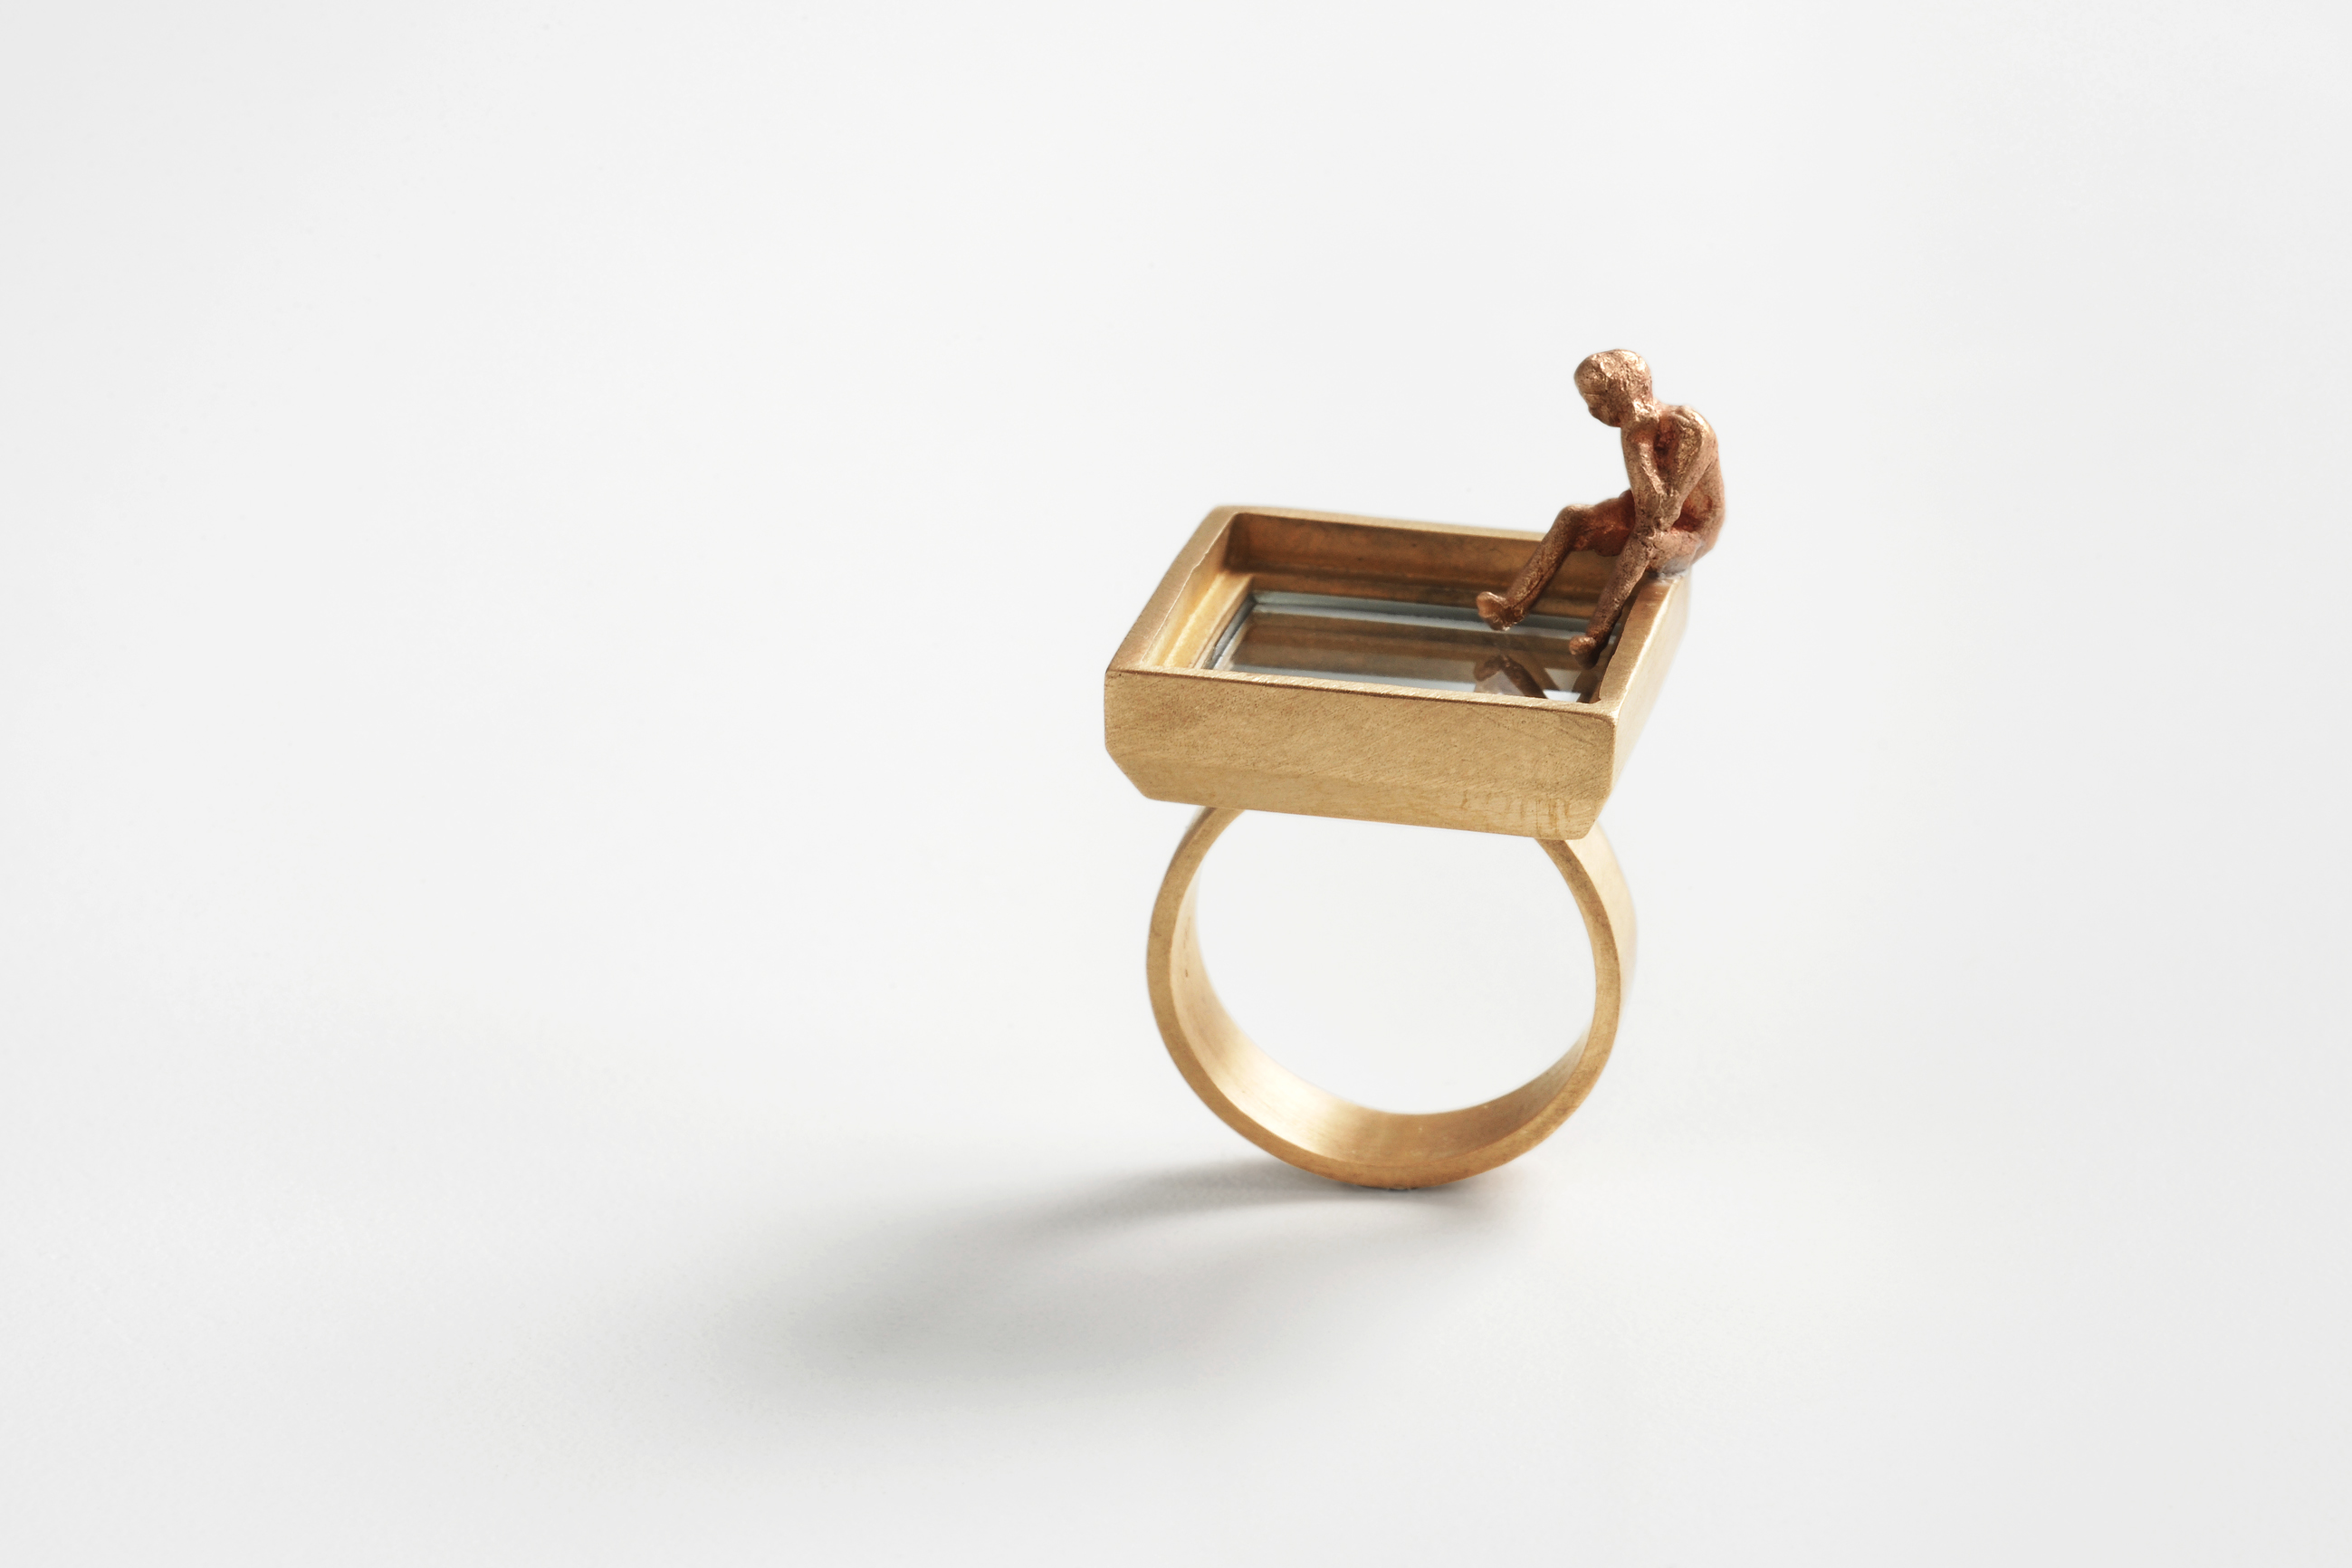 3 - Narcissus Shared thought - ring - bronze , mirror